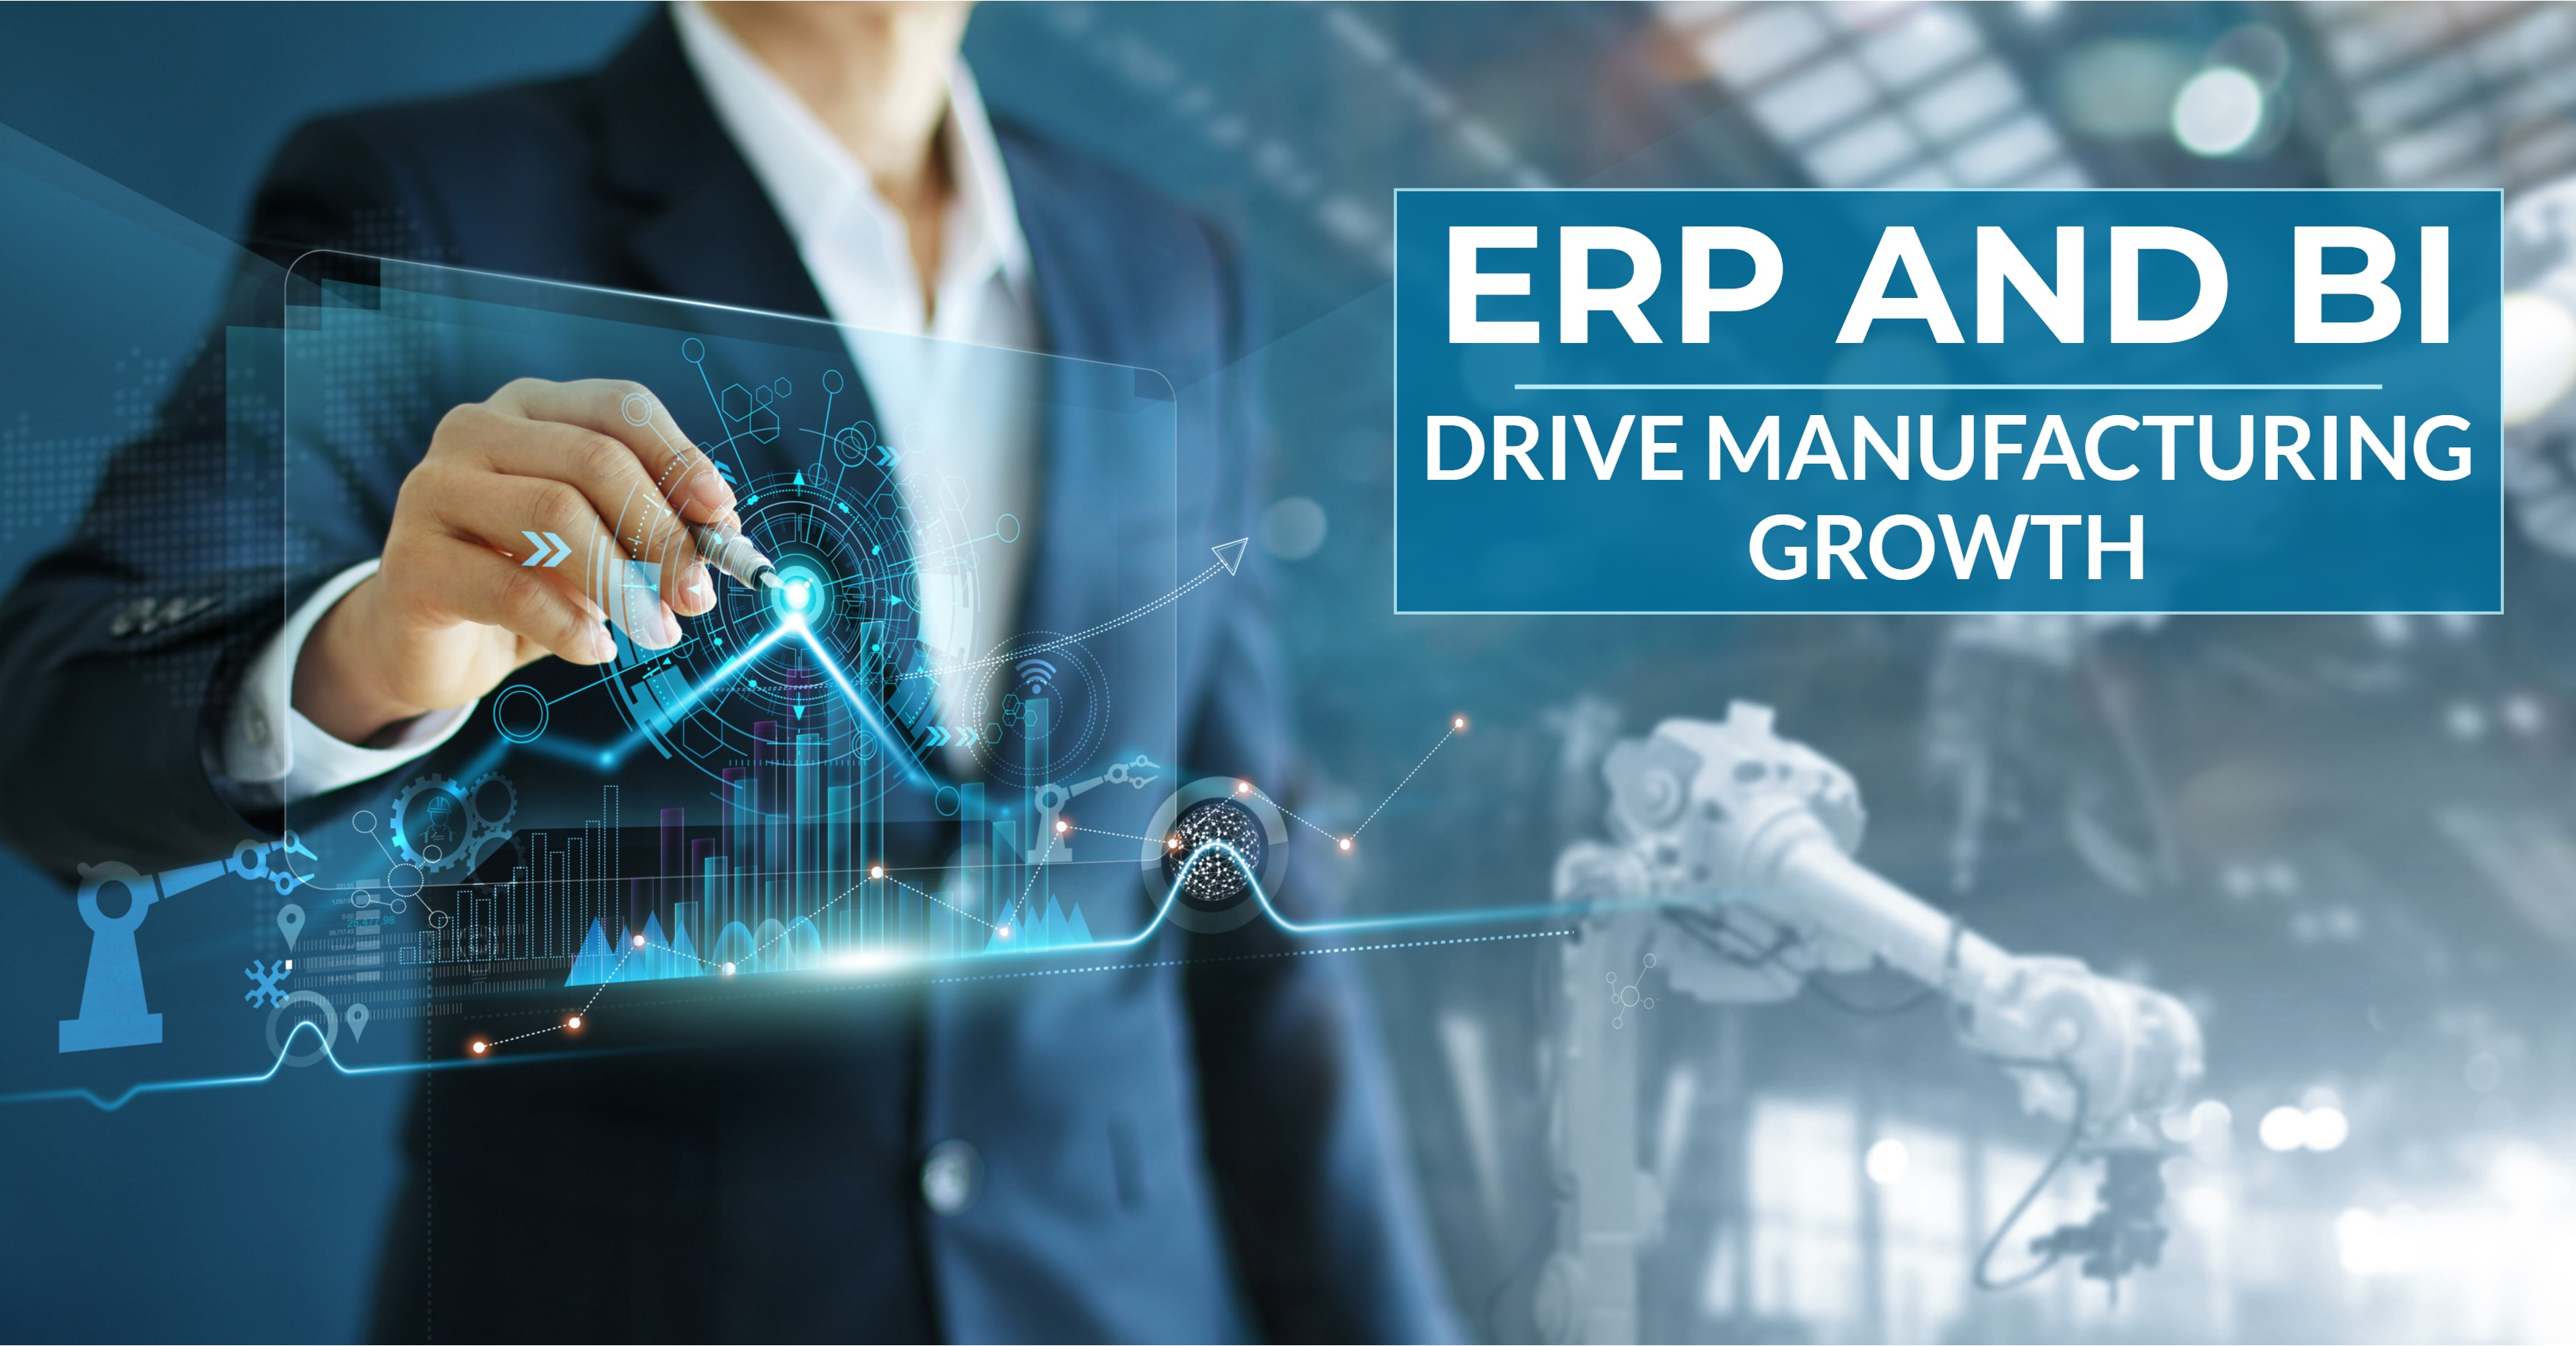 How ERP and BI Drive Manufacturing Growth